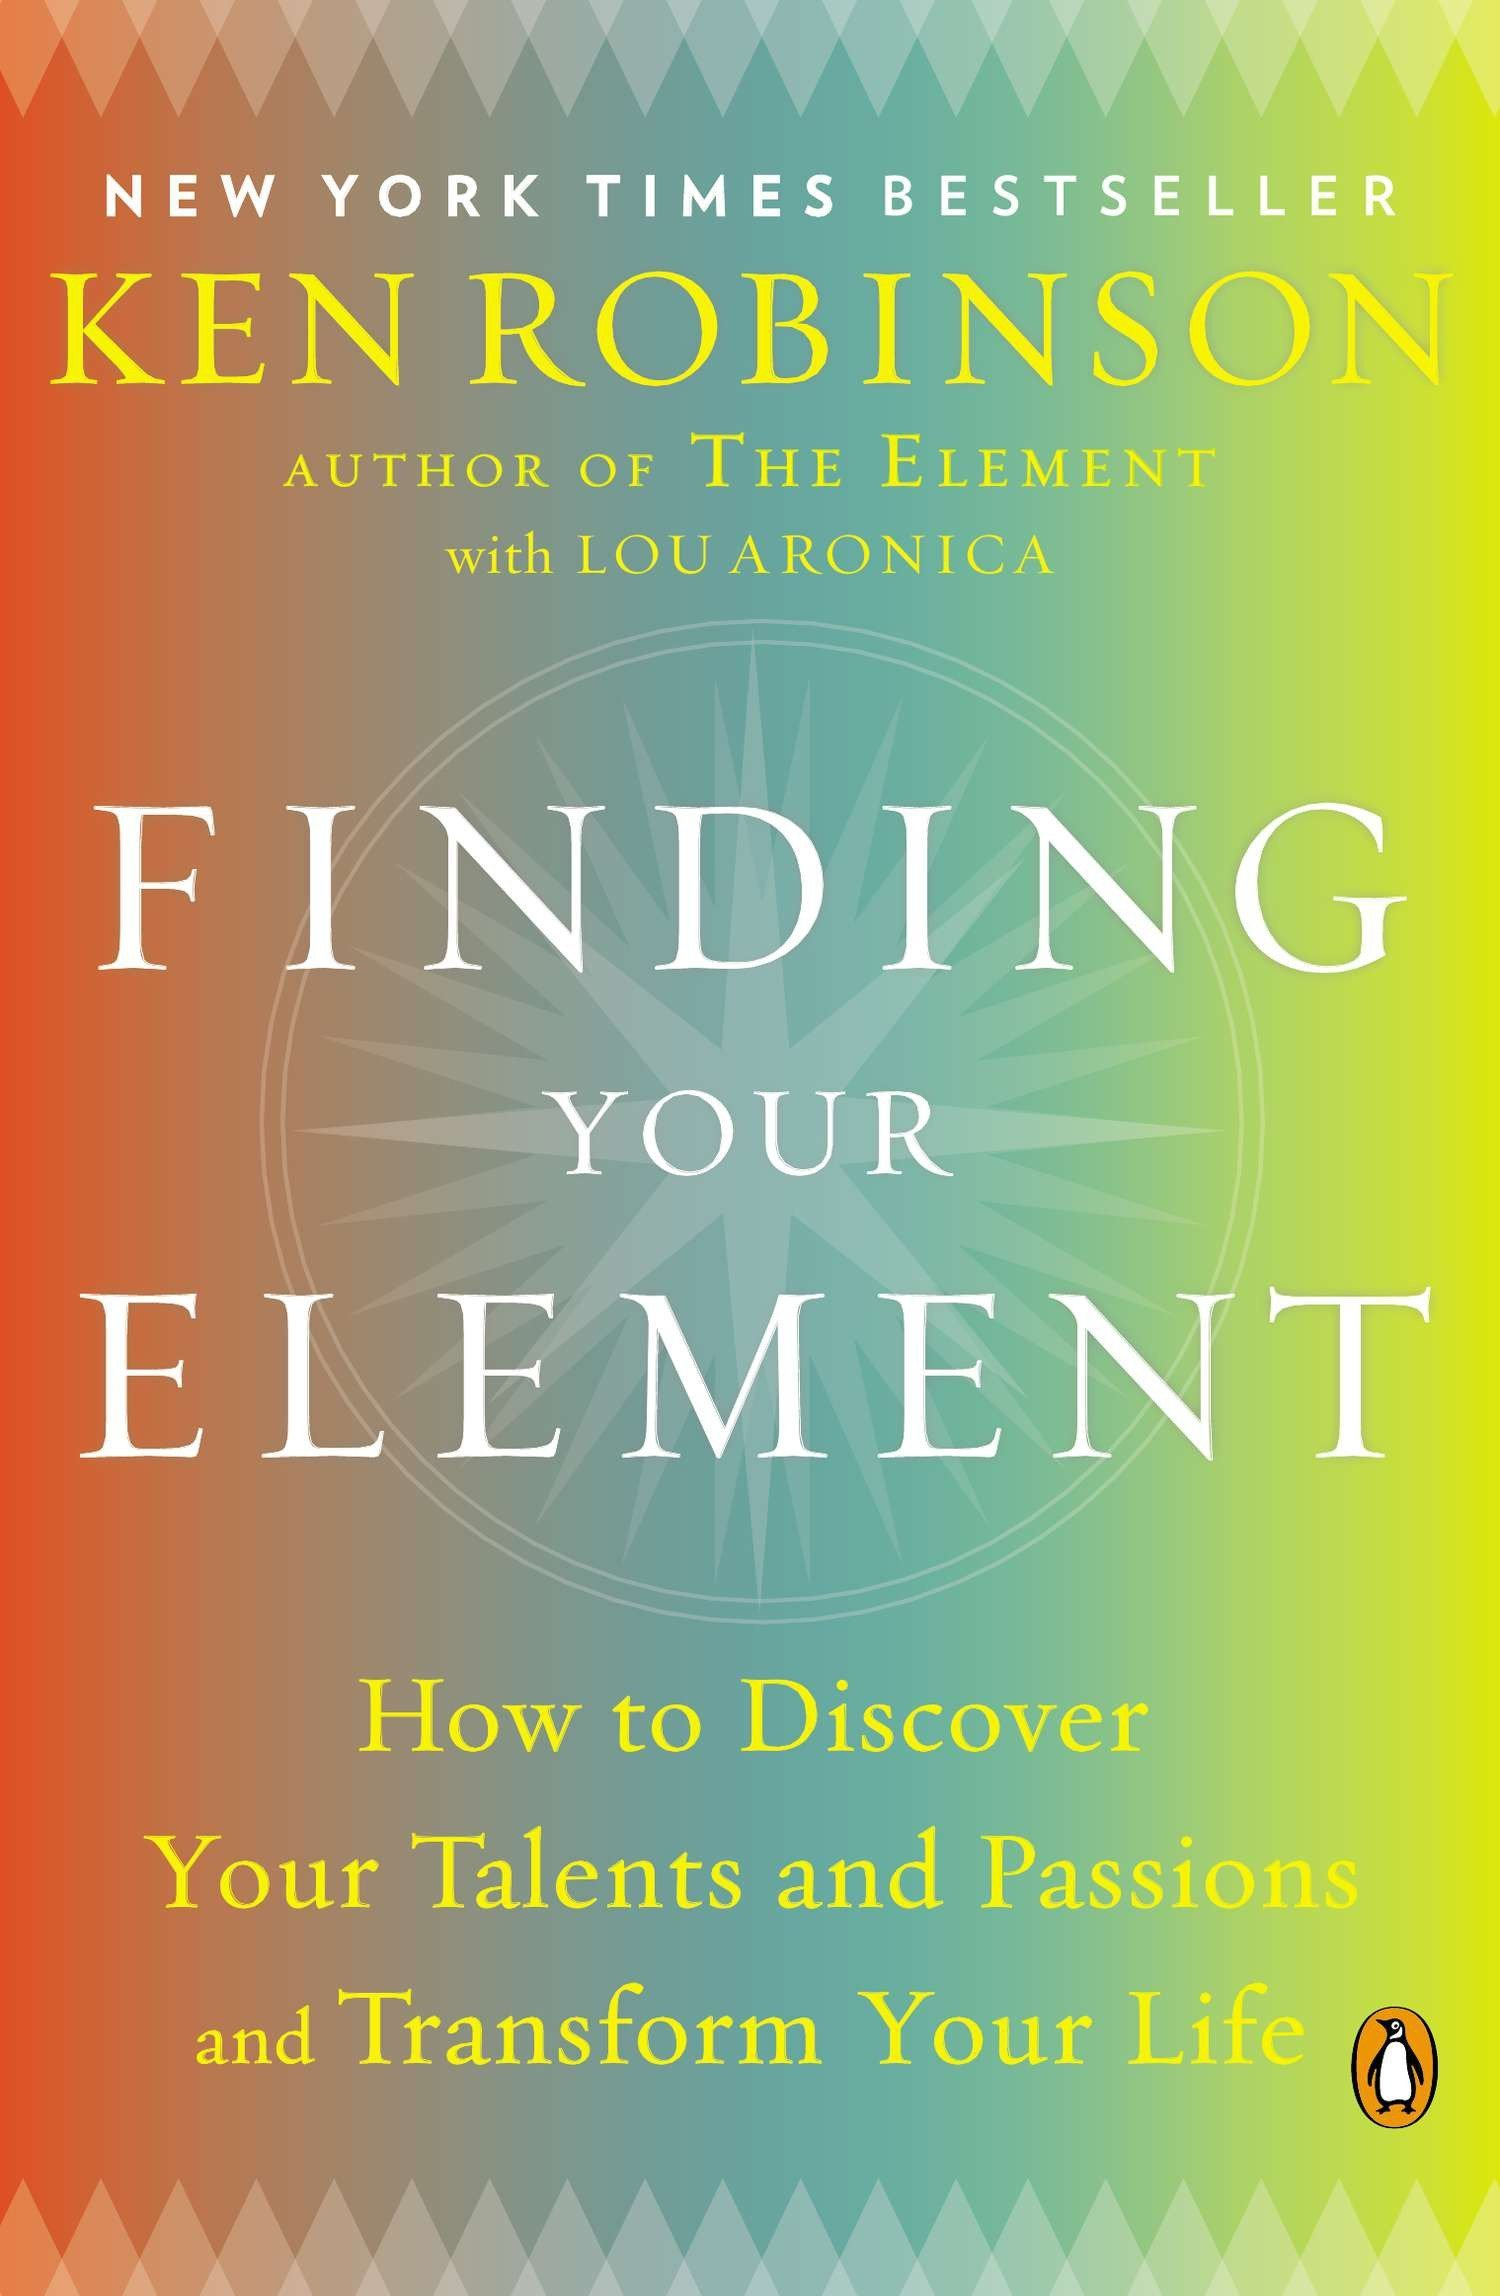 finding your element how to discover your talents and passions and